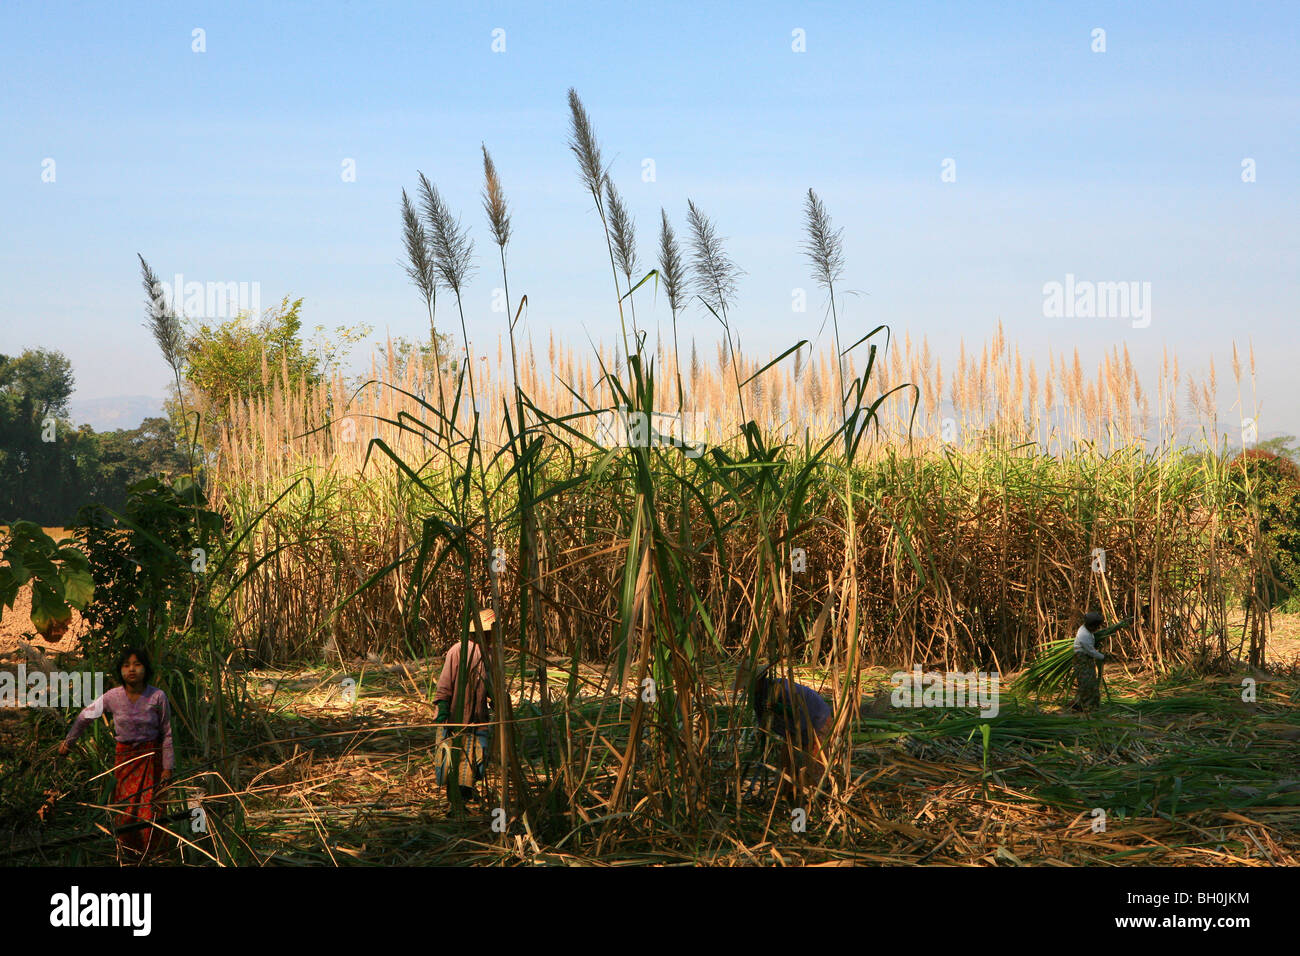 Workers on a sugarcane field, Shan State, Myanmar, Burma, Asia - Stock Image